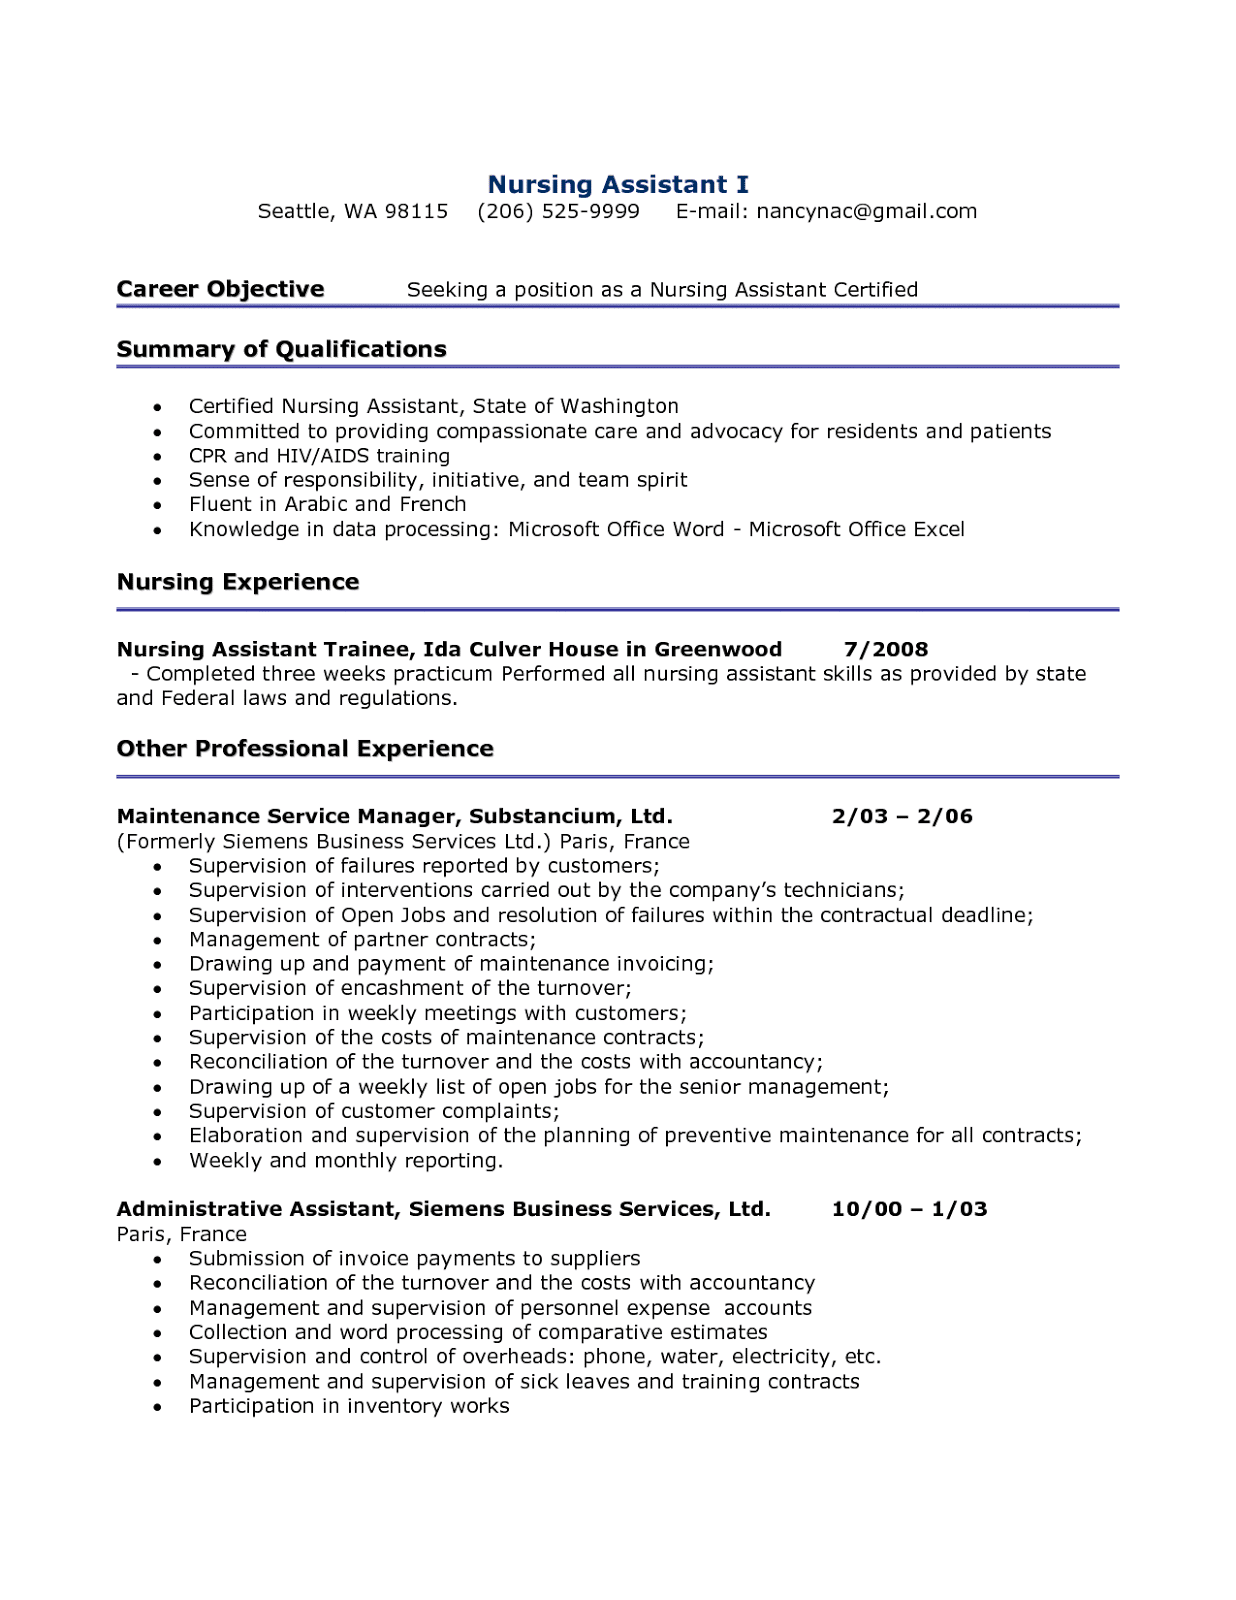 resume sample for nursing assistant